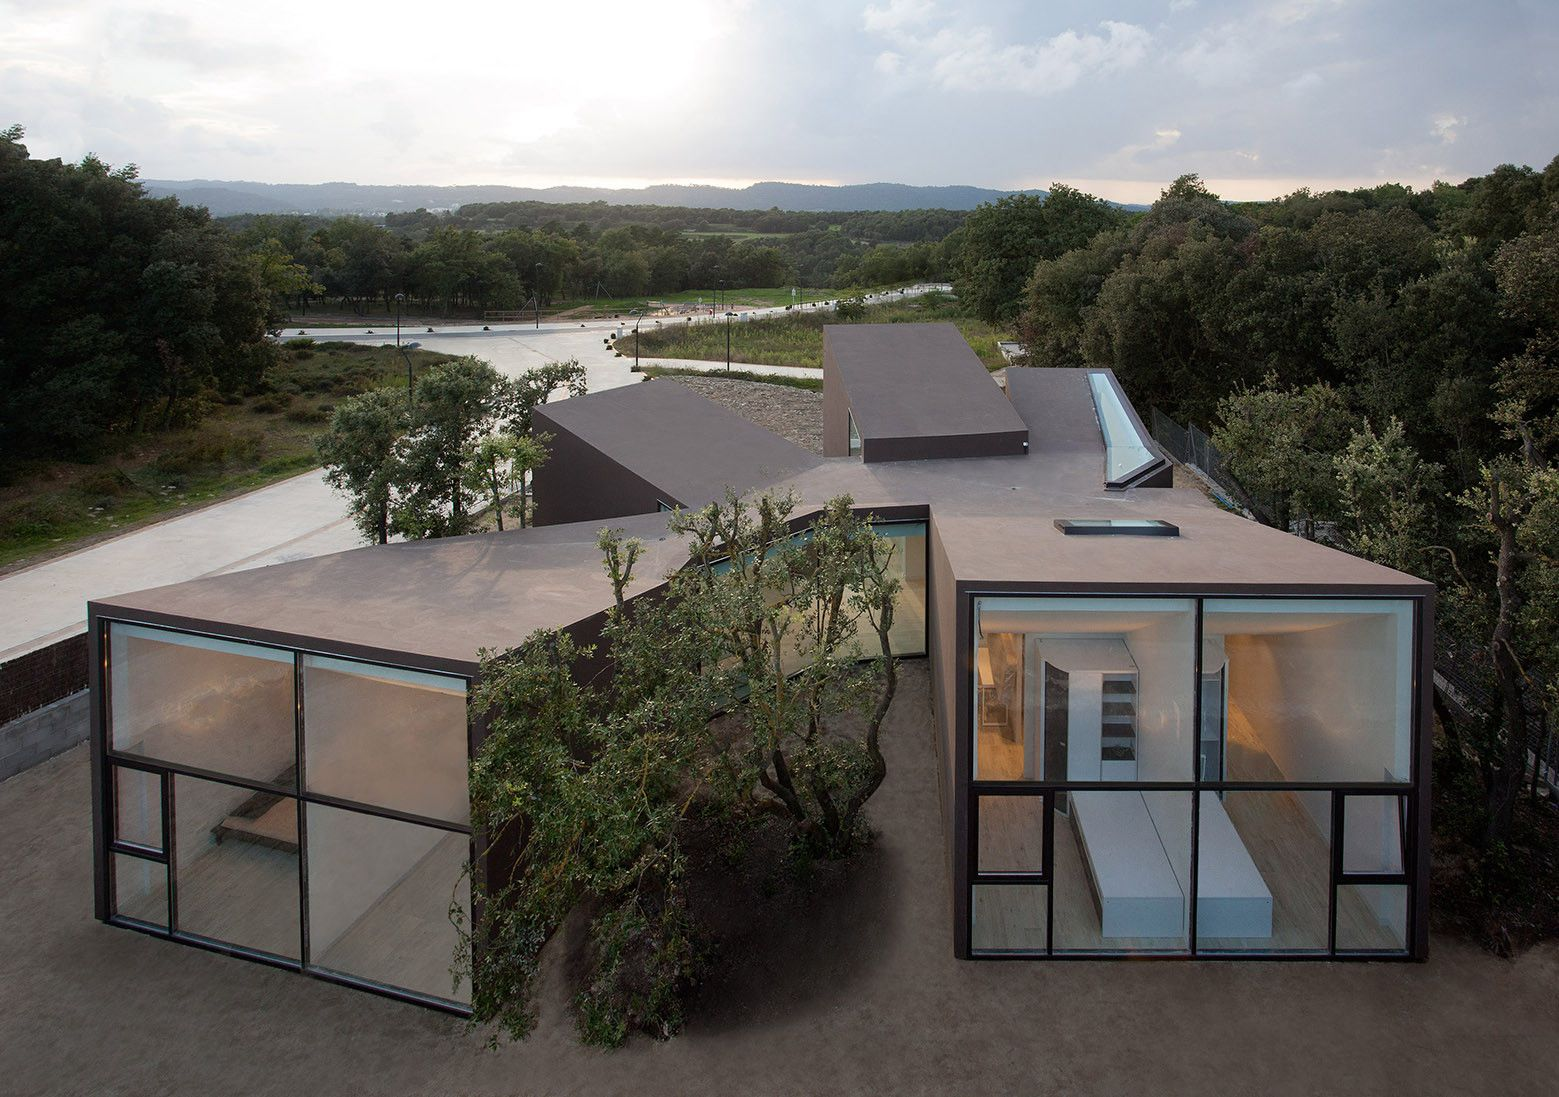 Built by Santiago Parramón, RTA-Office in El Vallès Oriental, Spain with date 2014. Images by Lorenzo Vecchia . A silent sculpture amidst calmness House and Studio YC  The building is situated in the center of the plot, respectin...